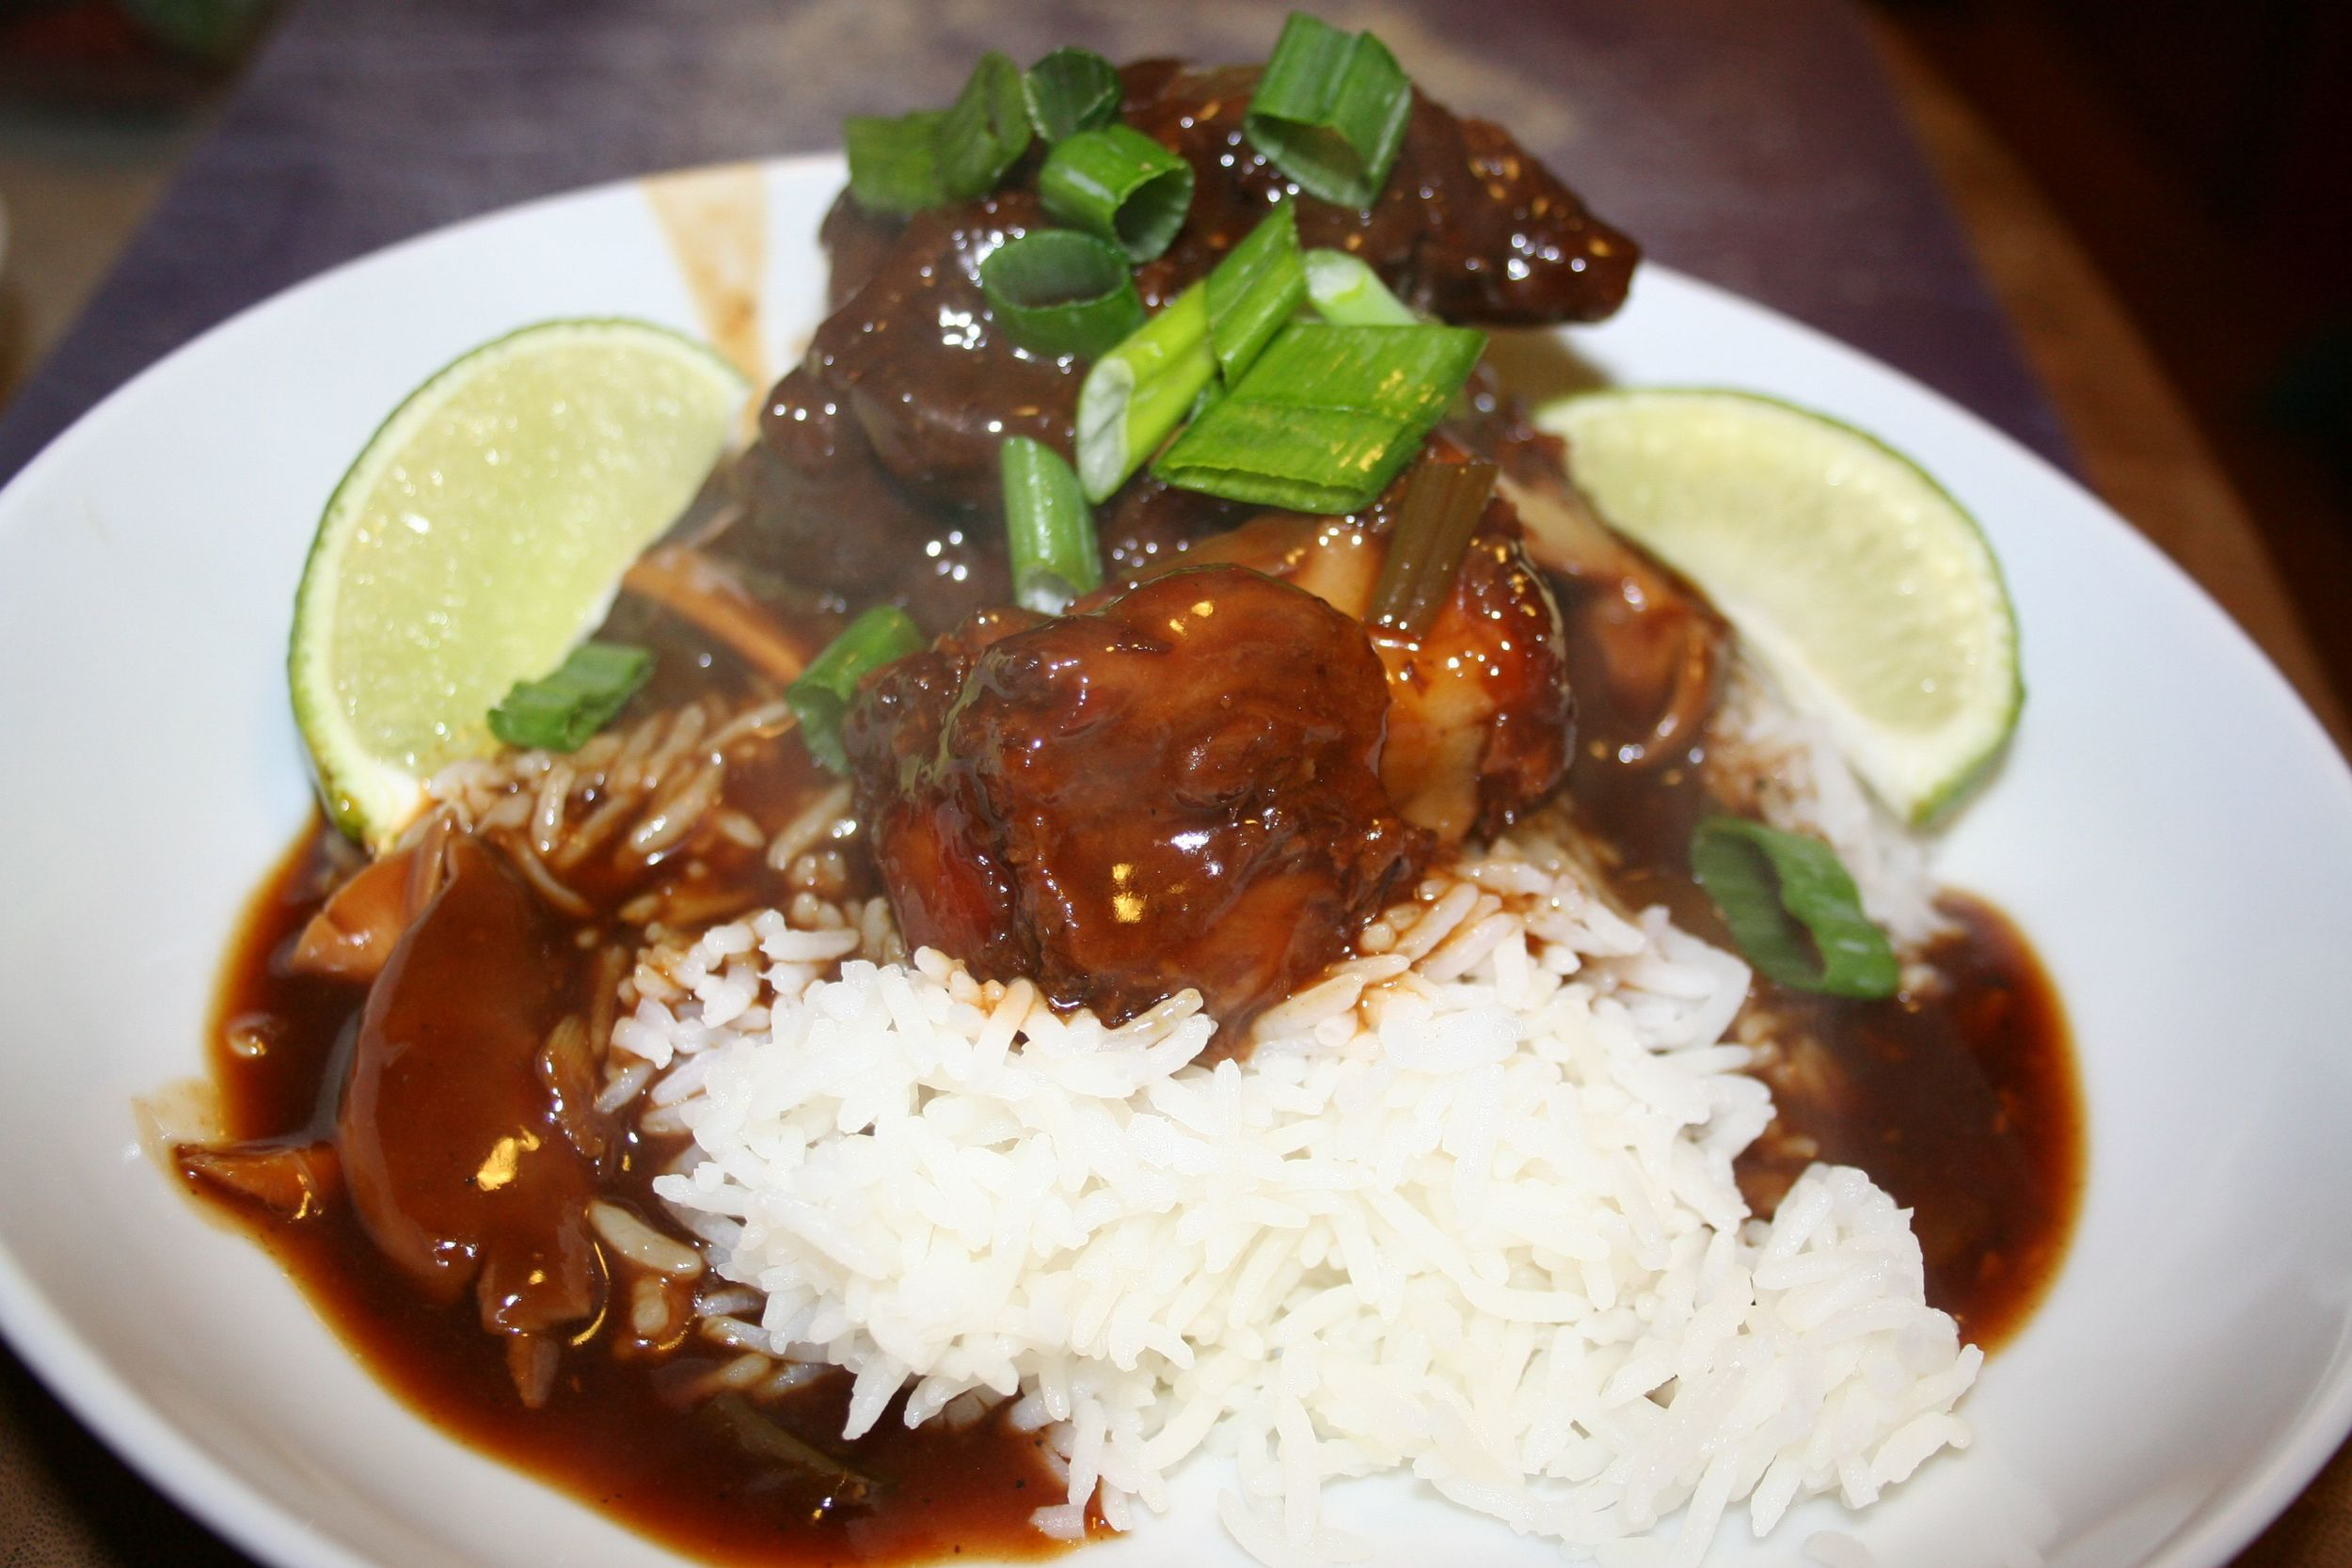 Oxtail stew over rice